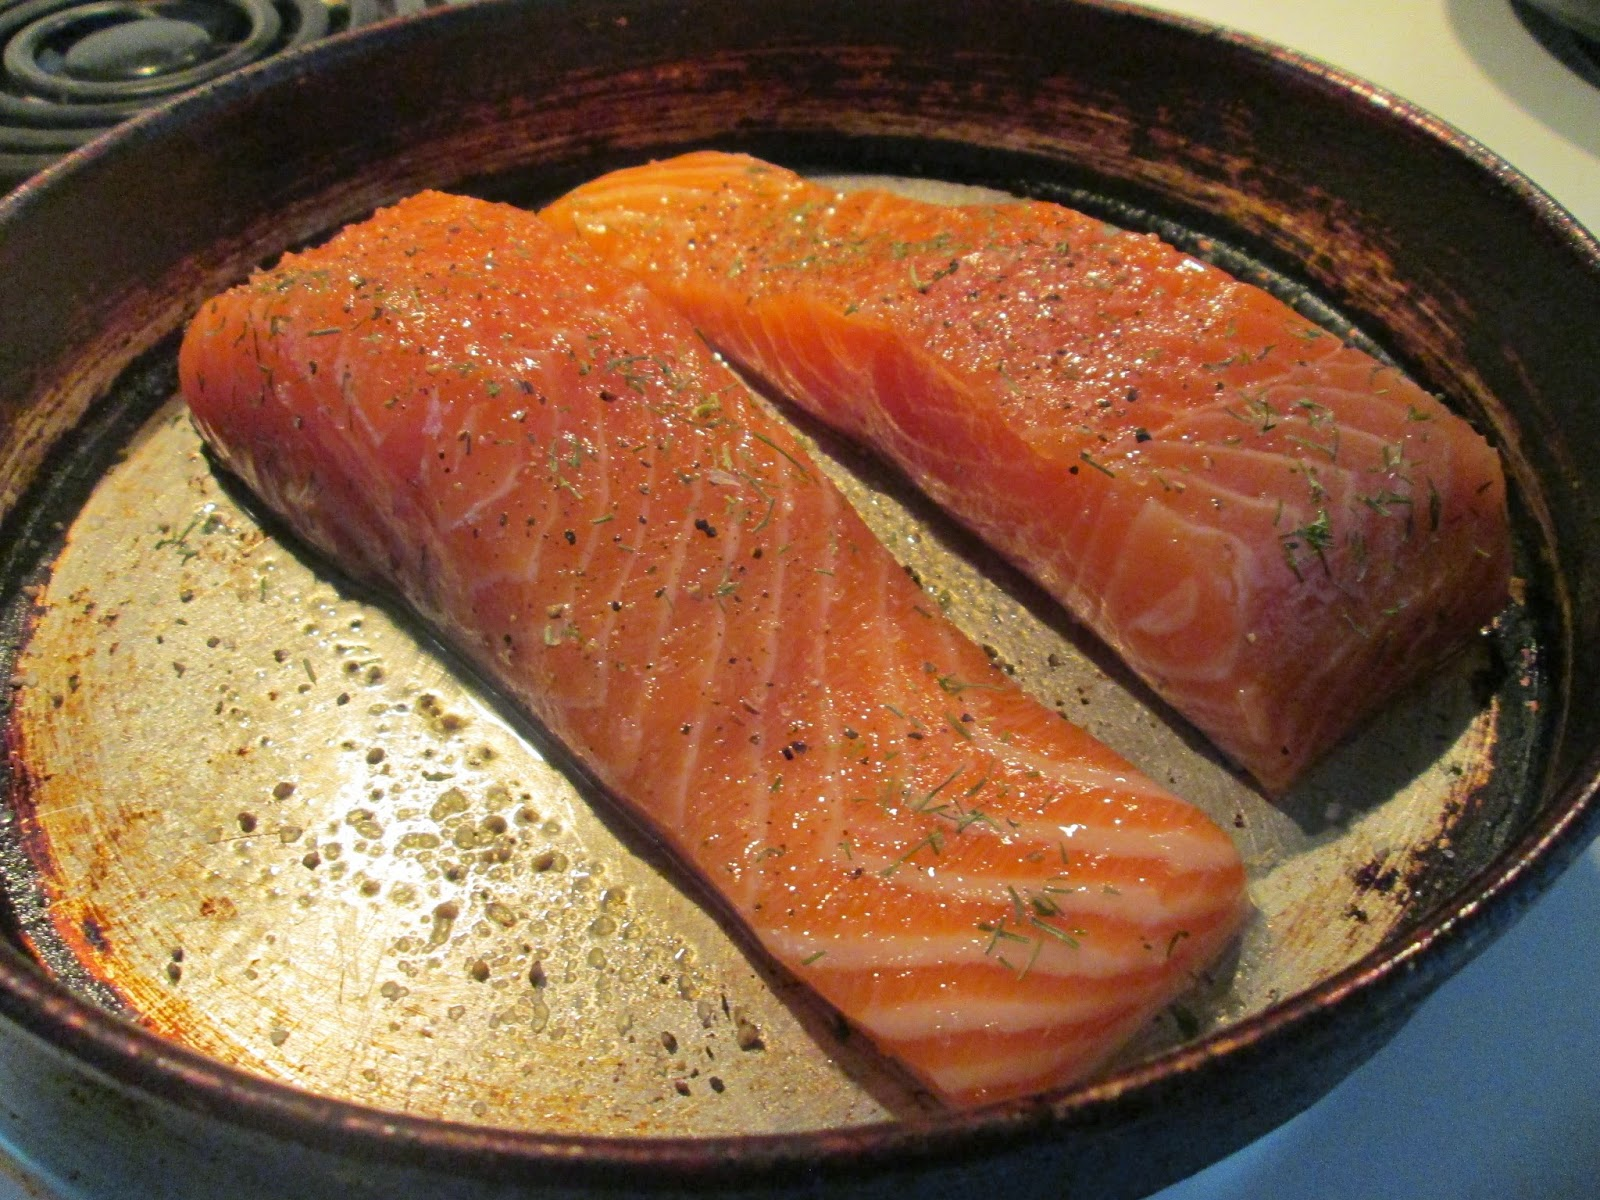 I Picked The Atlantic Wild Caught Salmon Up At Kroger Yesterday, They Had  Some Beautiful Fillets! To Prepare It I Rubbed It With A Light Coat Of  Extra